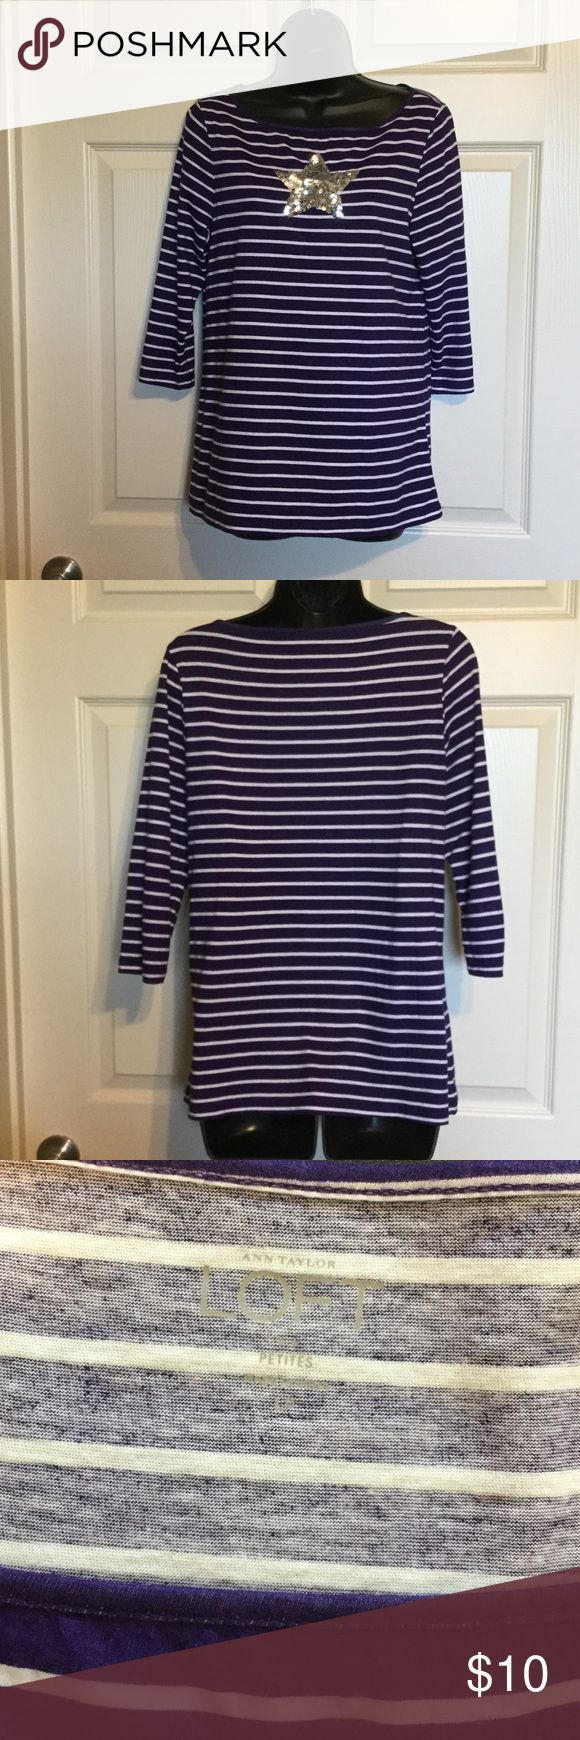 Ann Taylor loft Petites blouses 👚 Pretty purple with shining star color top Tops Tees - Long Sleeve